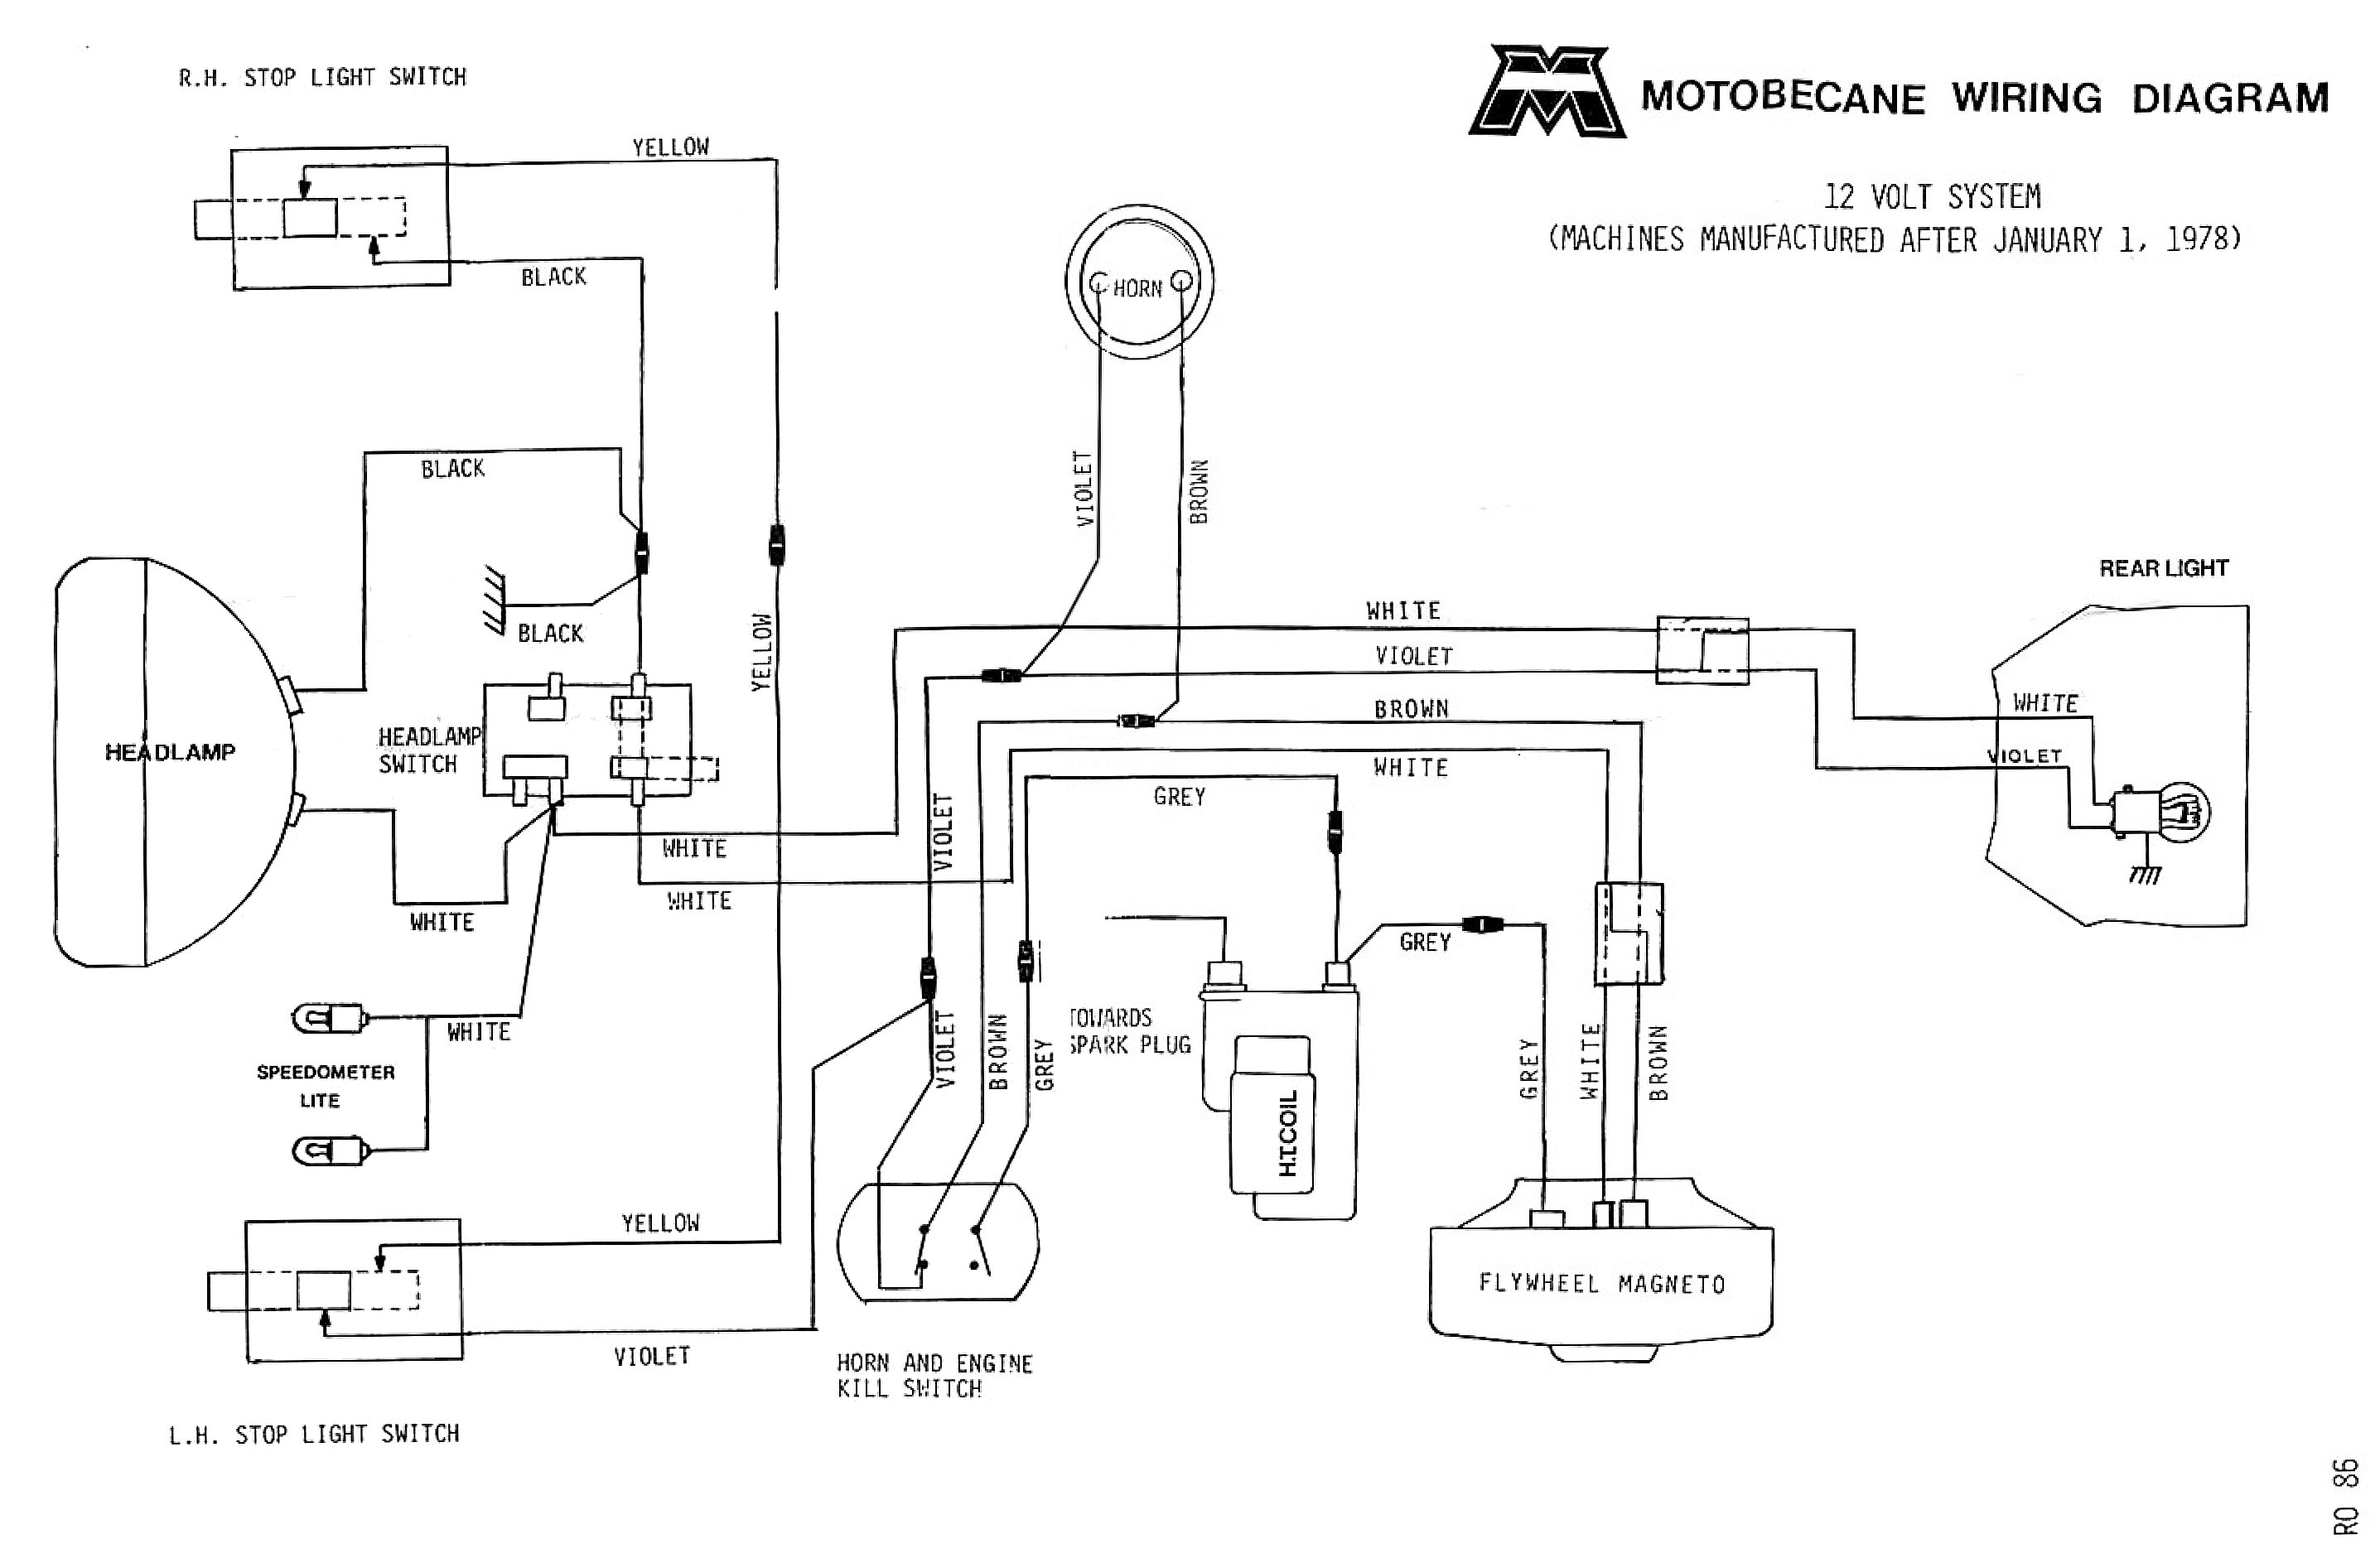 ford 2600 wiring diagram wiring diagram bookmark  wiring diagrams for ford 2600 tractor #7